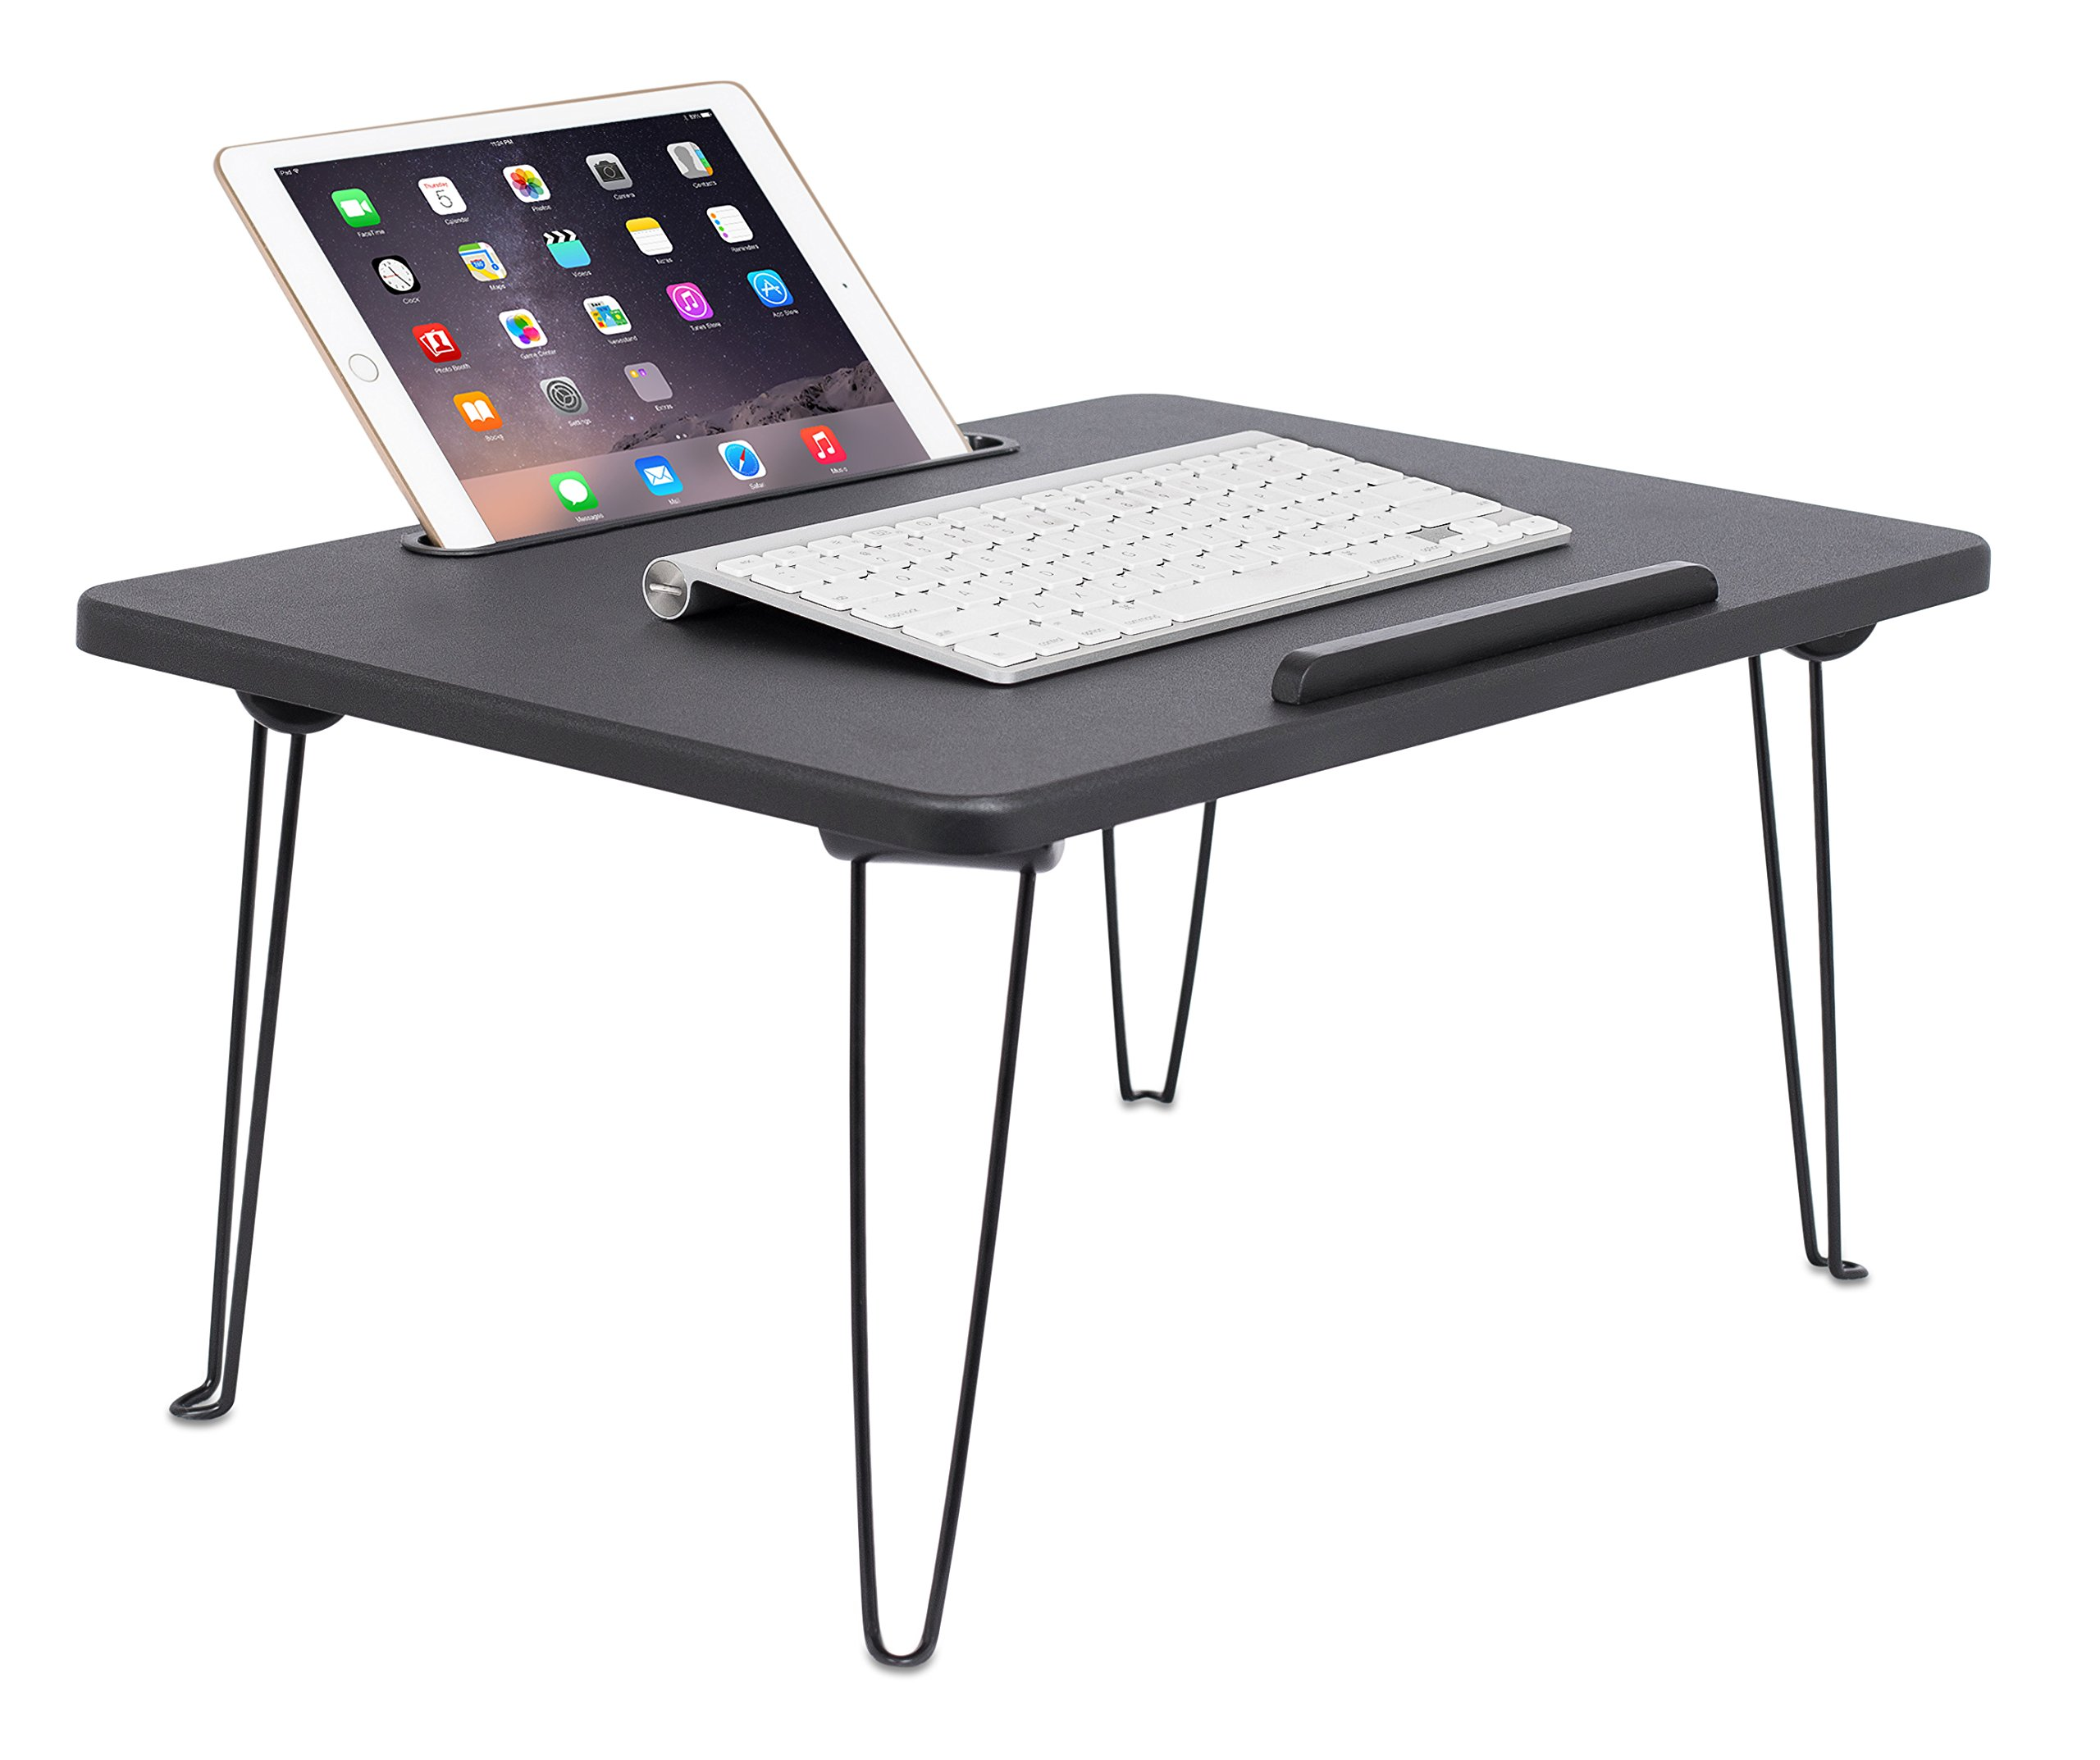 Sofia + Sam Lap Tray with Tablet Slot | Metal Folding Legs | Lap Desk Laptop Stand | Breakfast Serving Bed Tray | Black